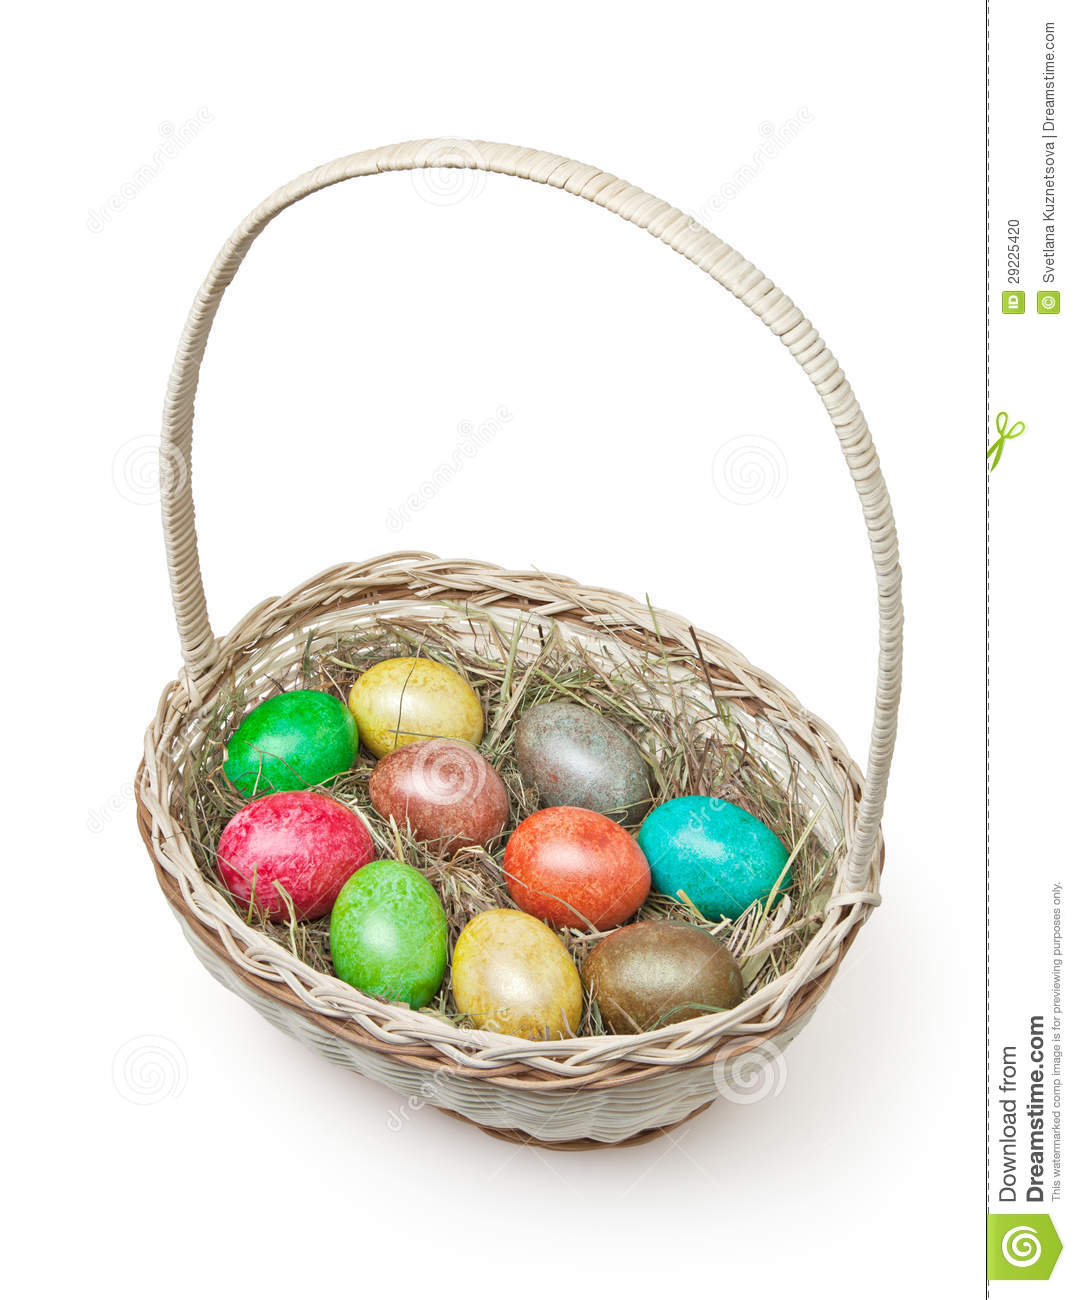 Download Cesta de Easter no branco foto de stock. Imagem de closeup - 29225420